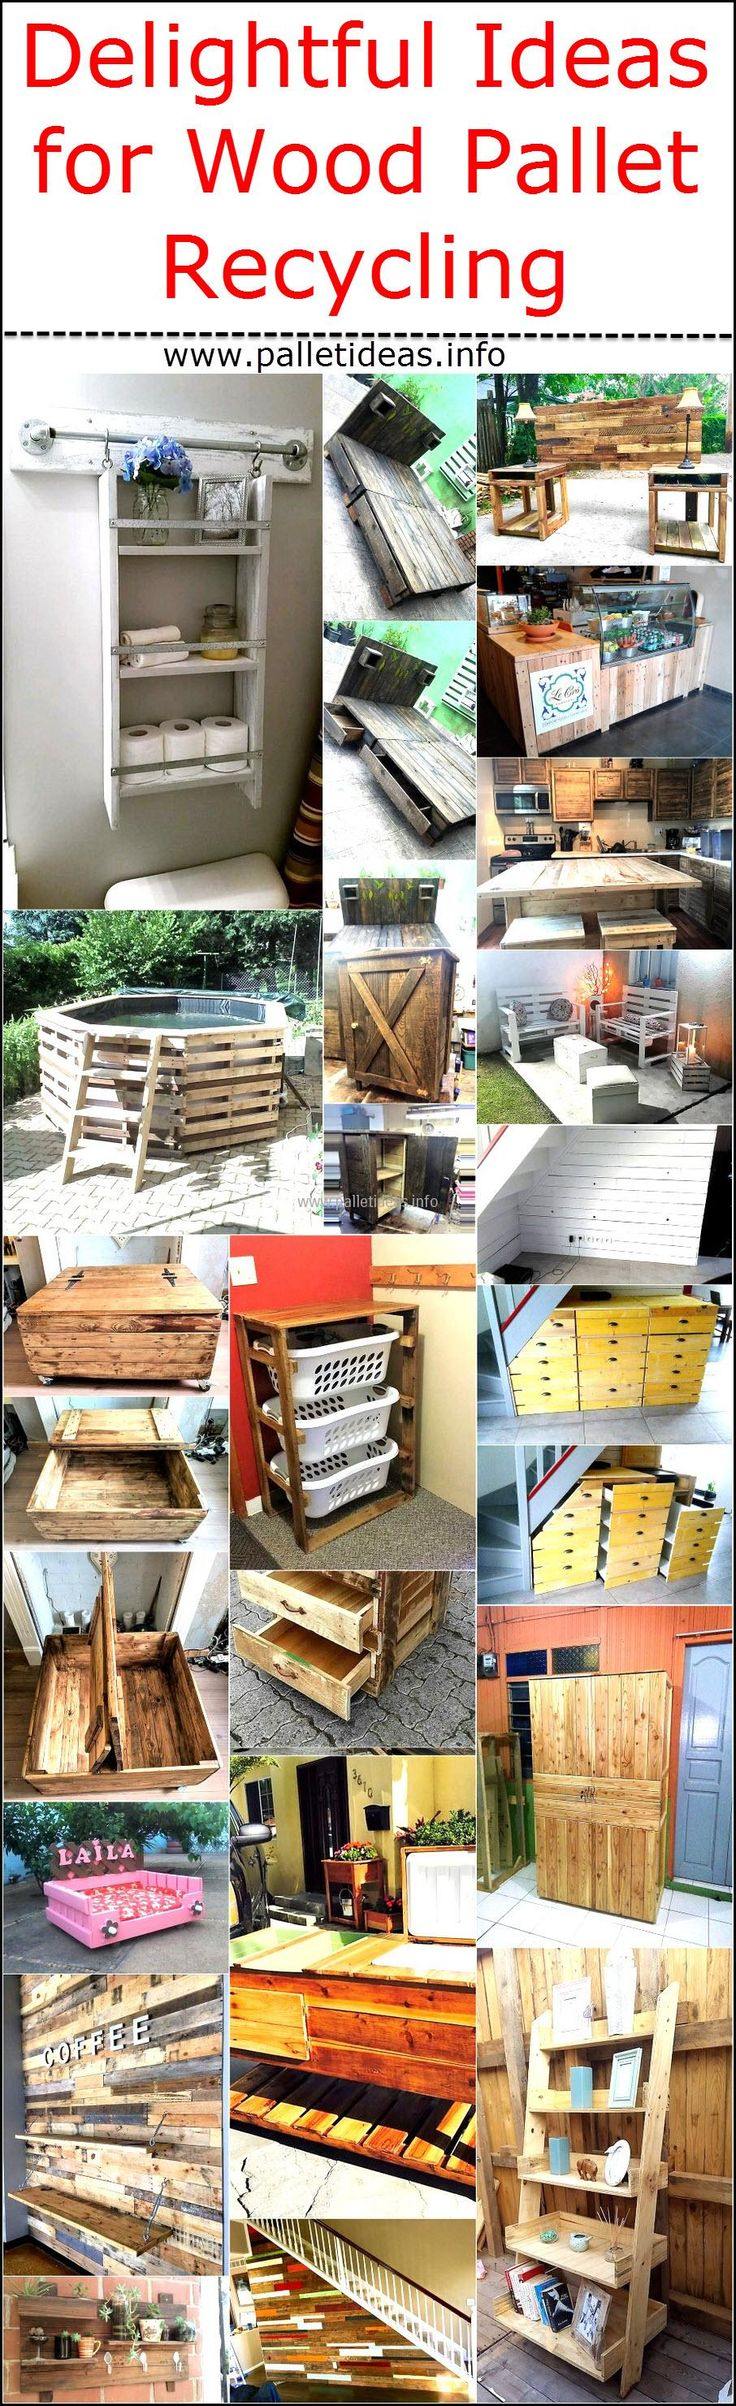 There are some people who have placed most of the furniture in their home made up of wood pallets while there are also some individuals who don't have any idea of how they use the wooden pallets, but it's interesting to know how they can reshape the wooden pallets to turn them into the items they can use at home. So, it's a bad idea to throw away the wooden pallets and it is wise to create furniture or decorative items with them just like the pallet wall art that makes the area look unique.